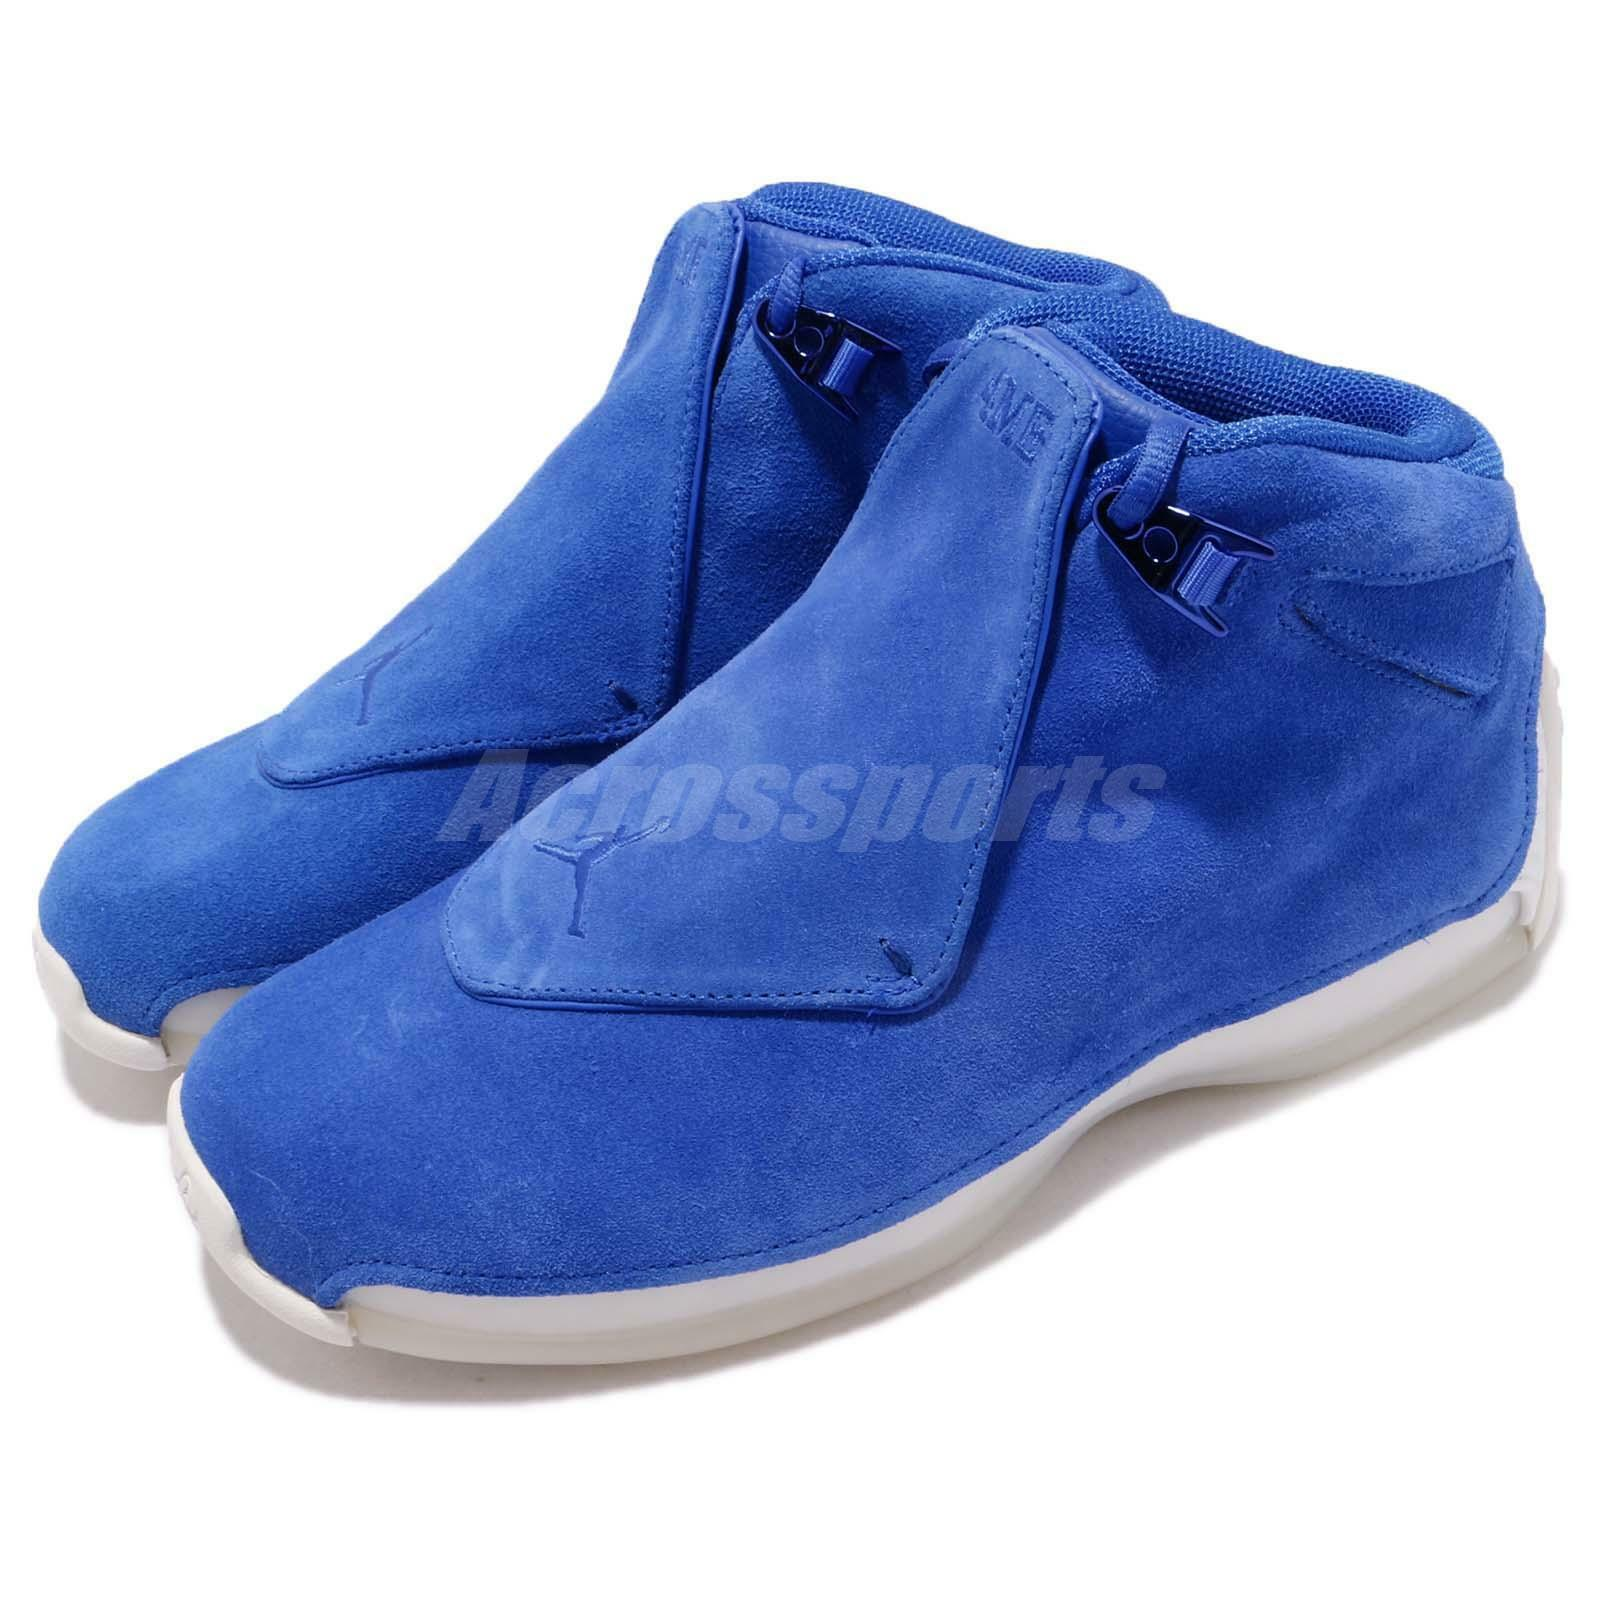 Nike Air Jordan 18 Retro Racer Blue Suede Mens Basketball Basketball Mens Shoes AA2494-401 065585